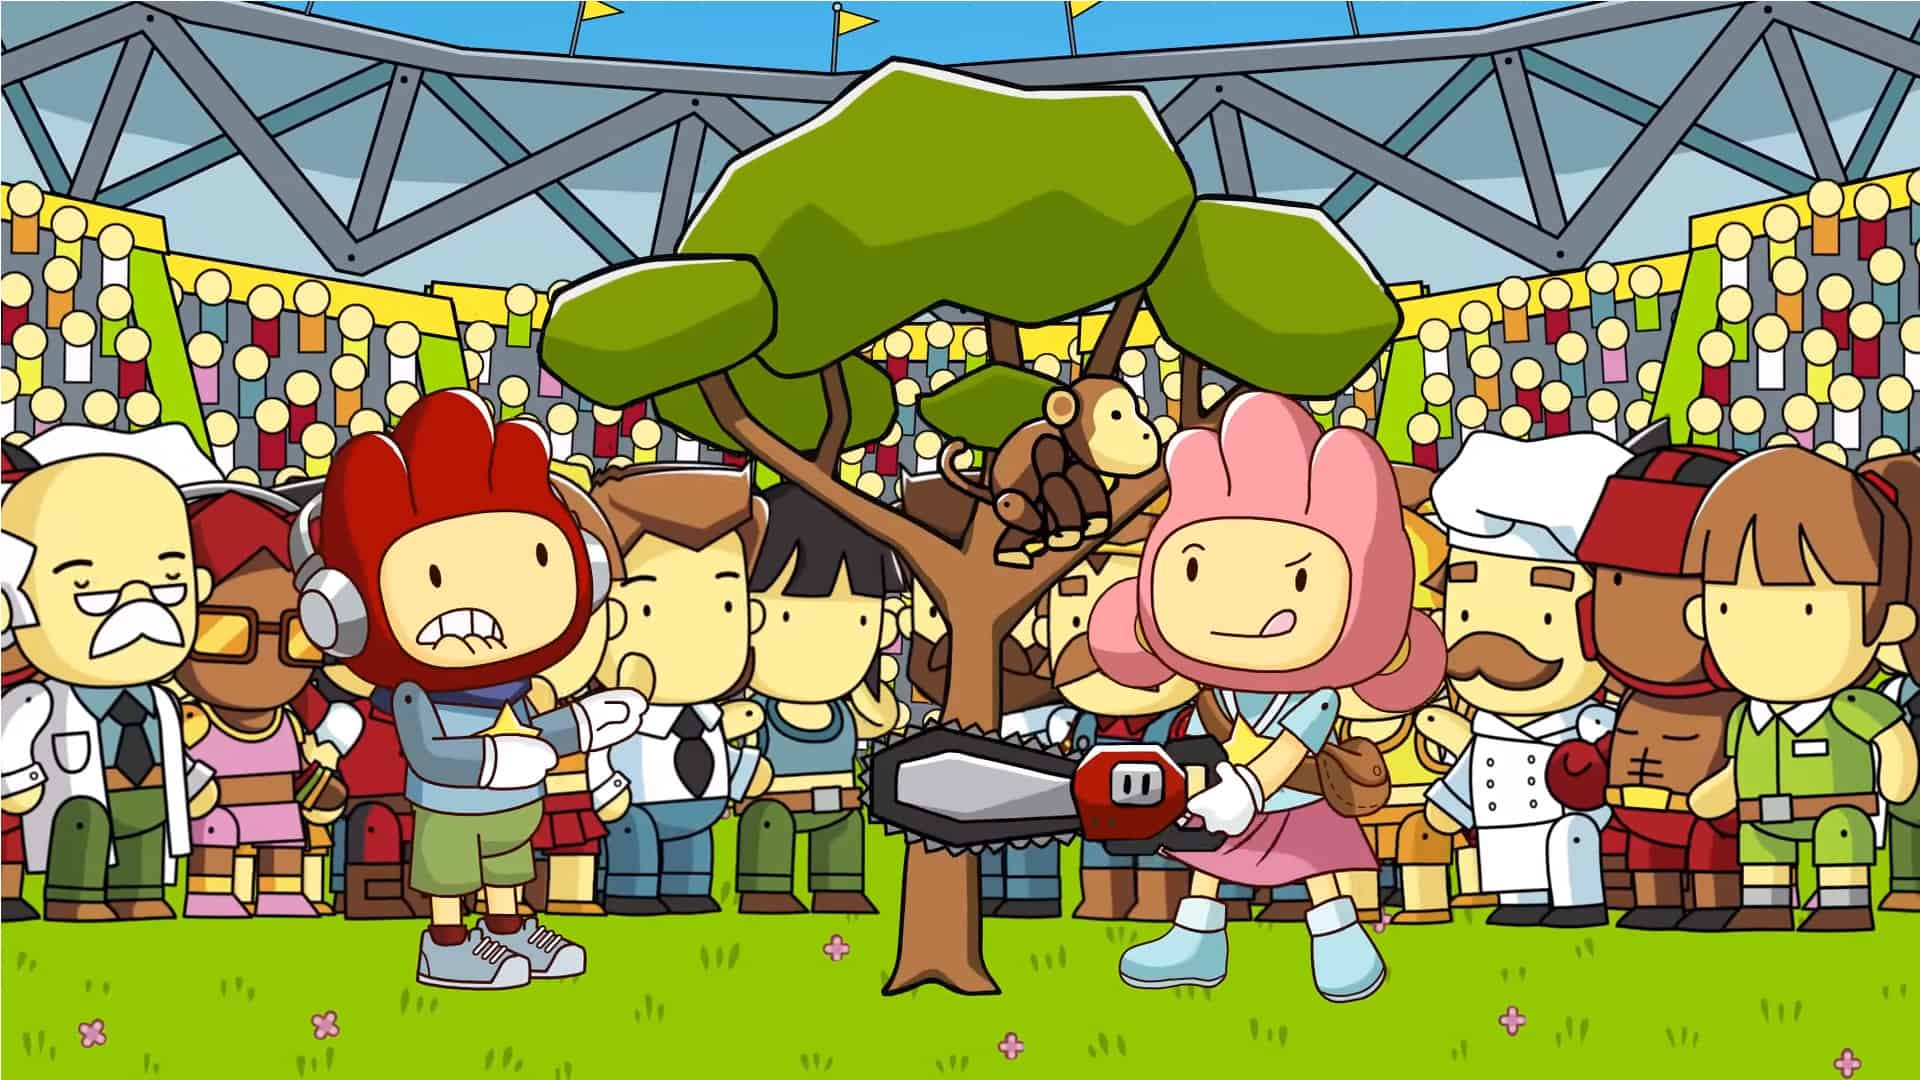 WBIE's Scribblenauts game features multiplayer modes